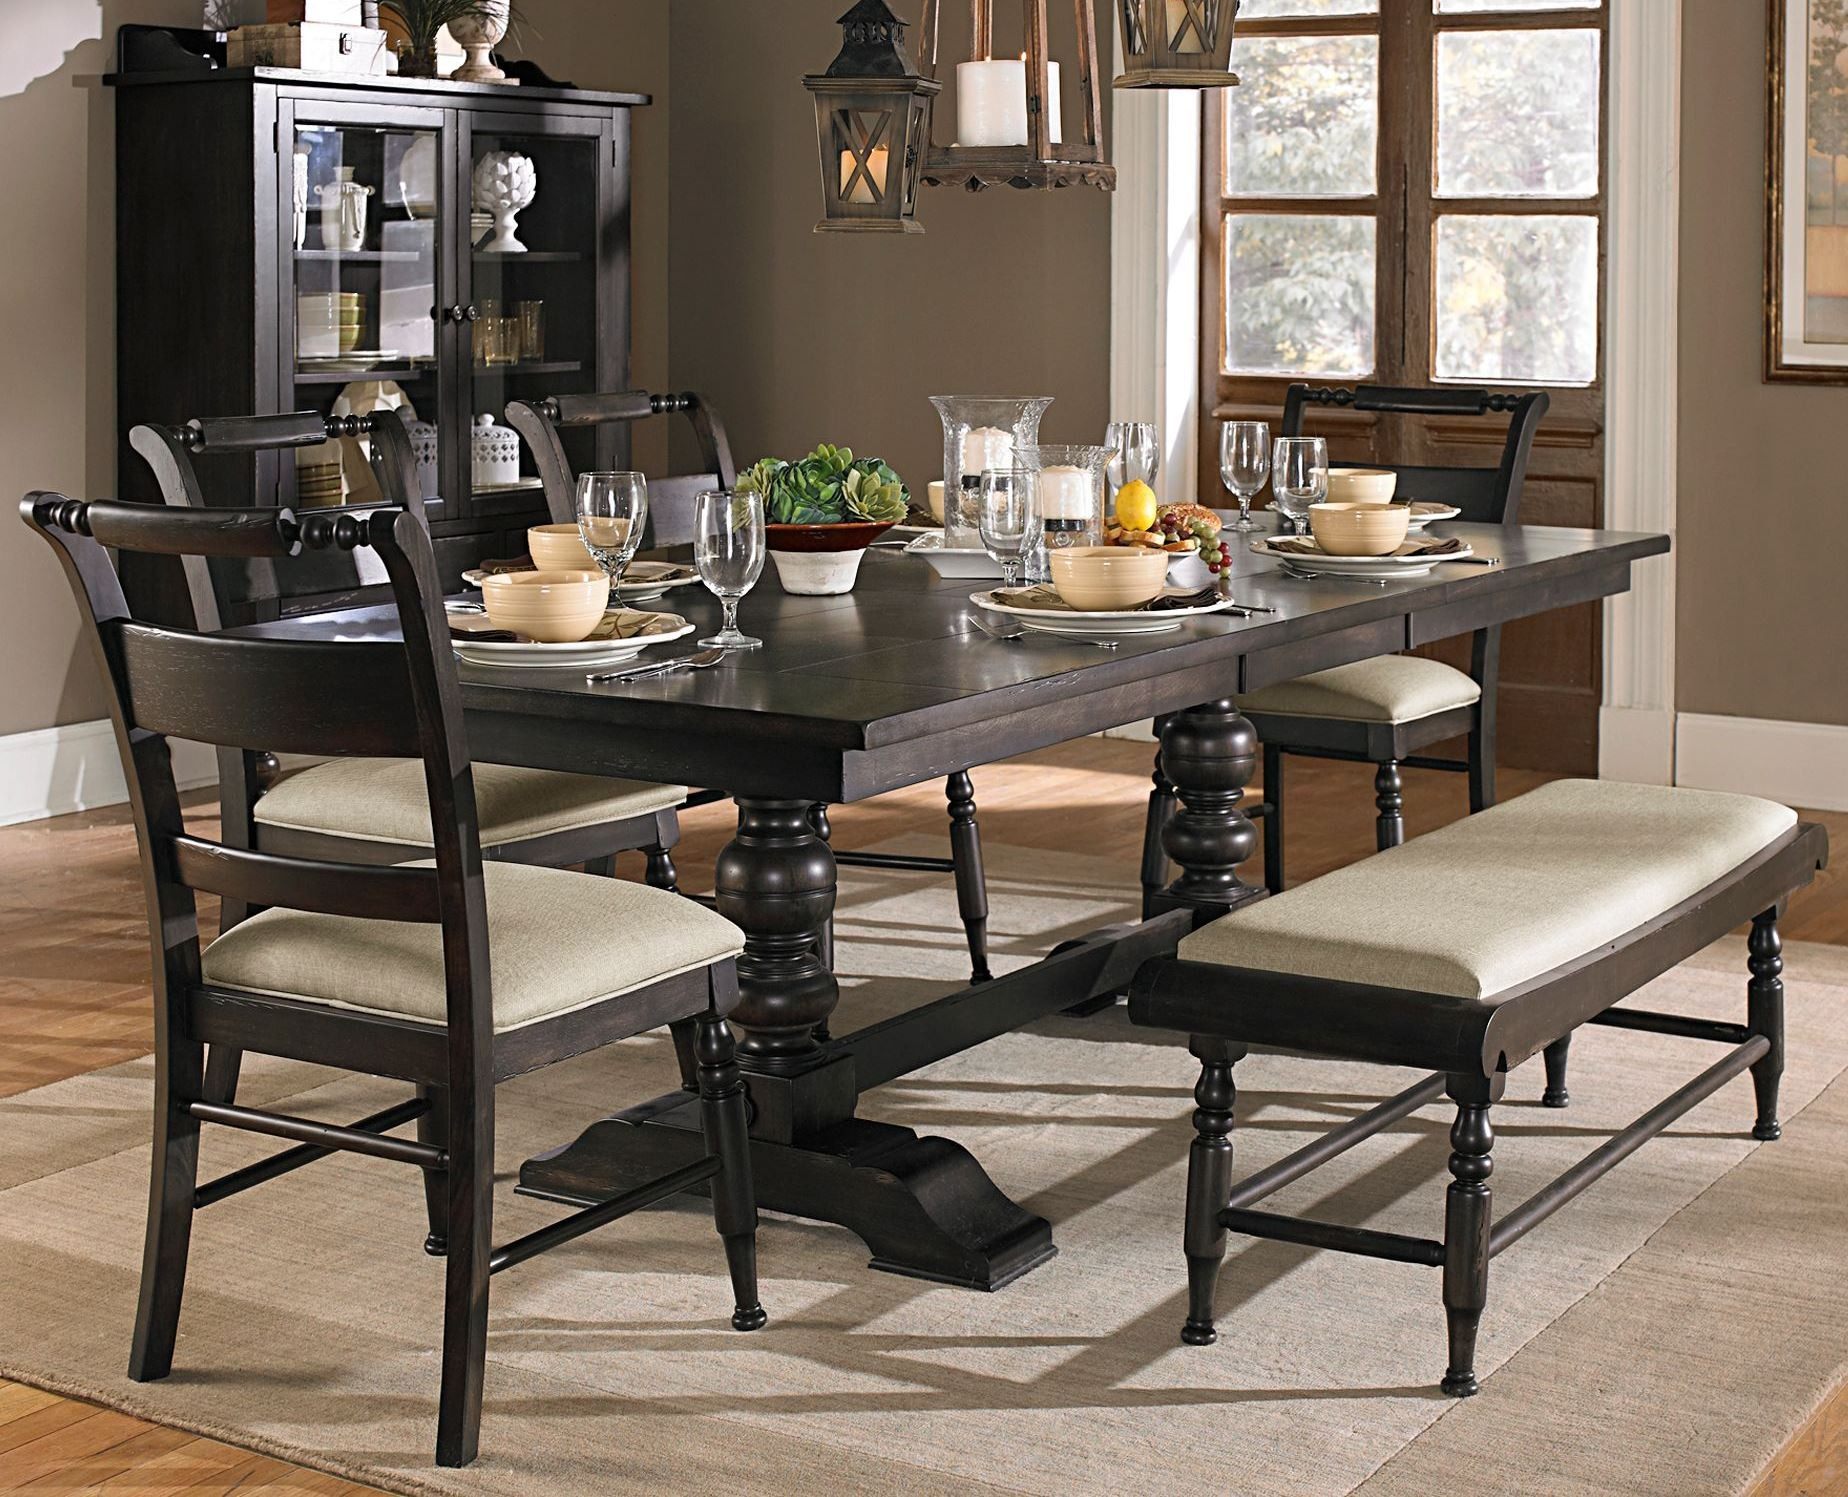 Whitney trestle dining room set from liberty 661 t4294 for Trestle dining room sets